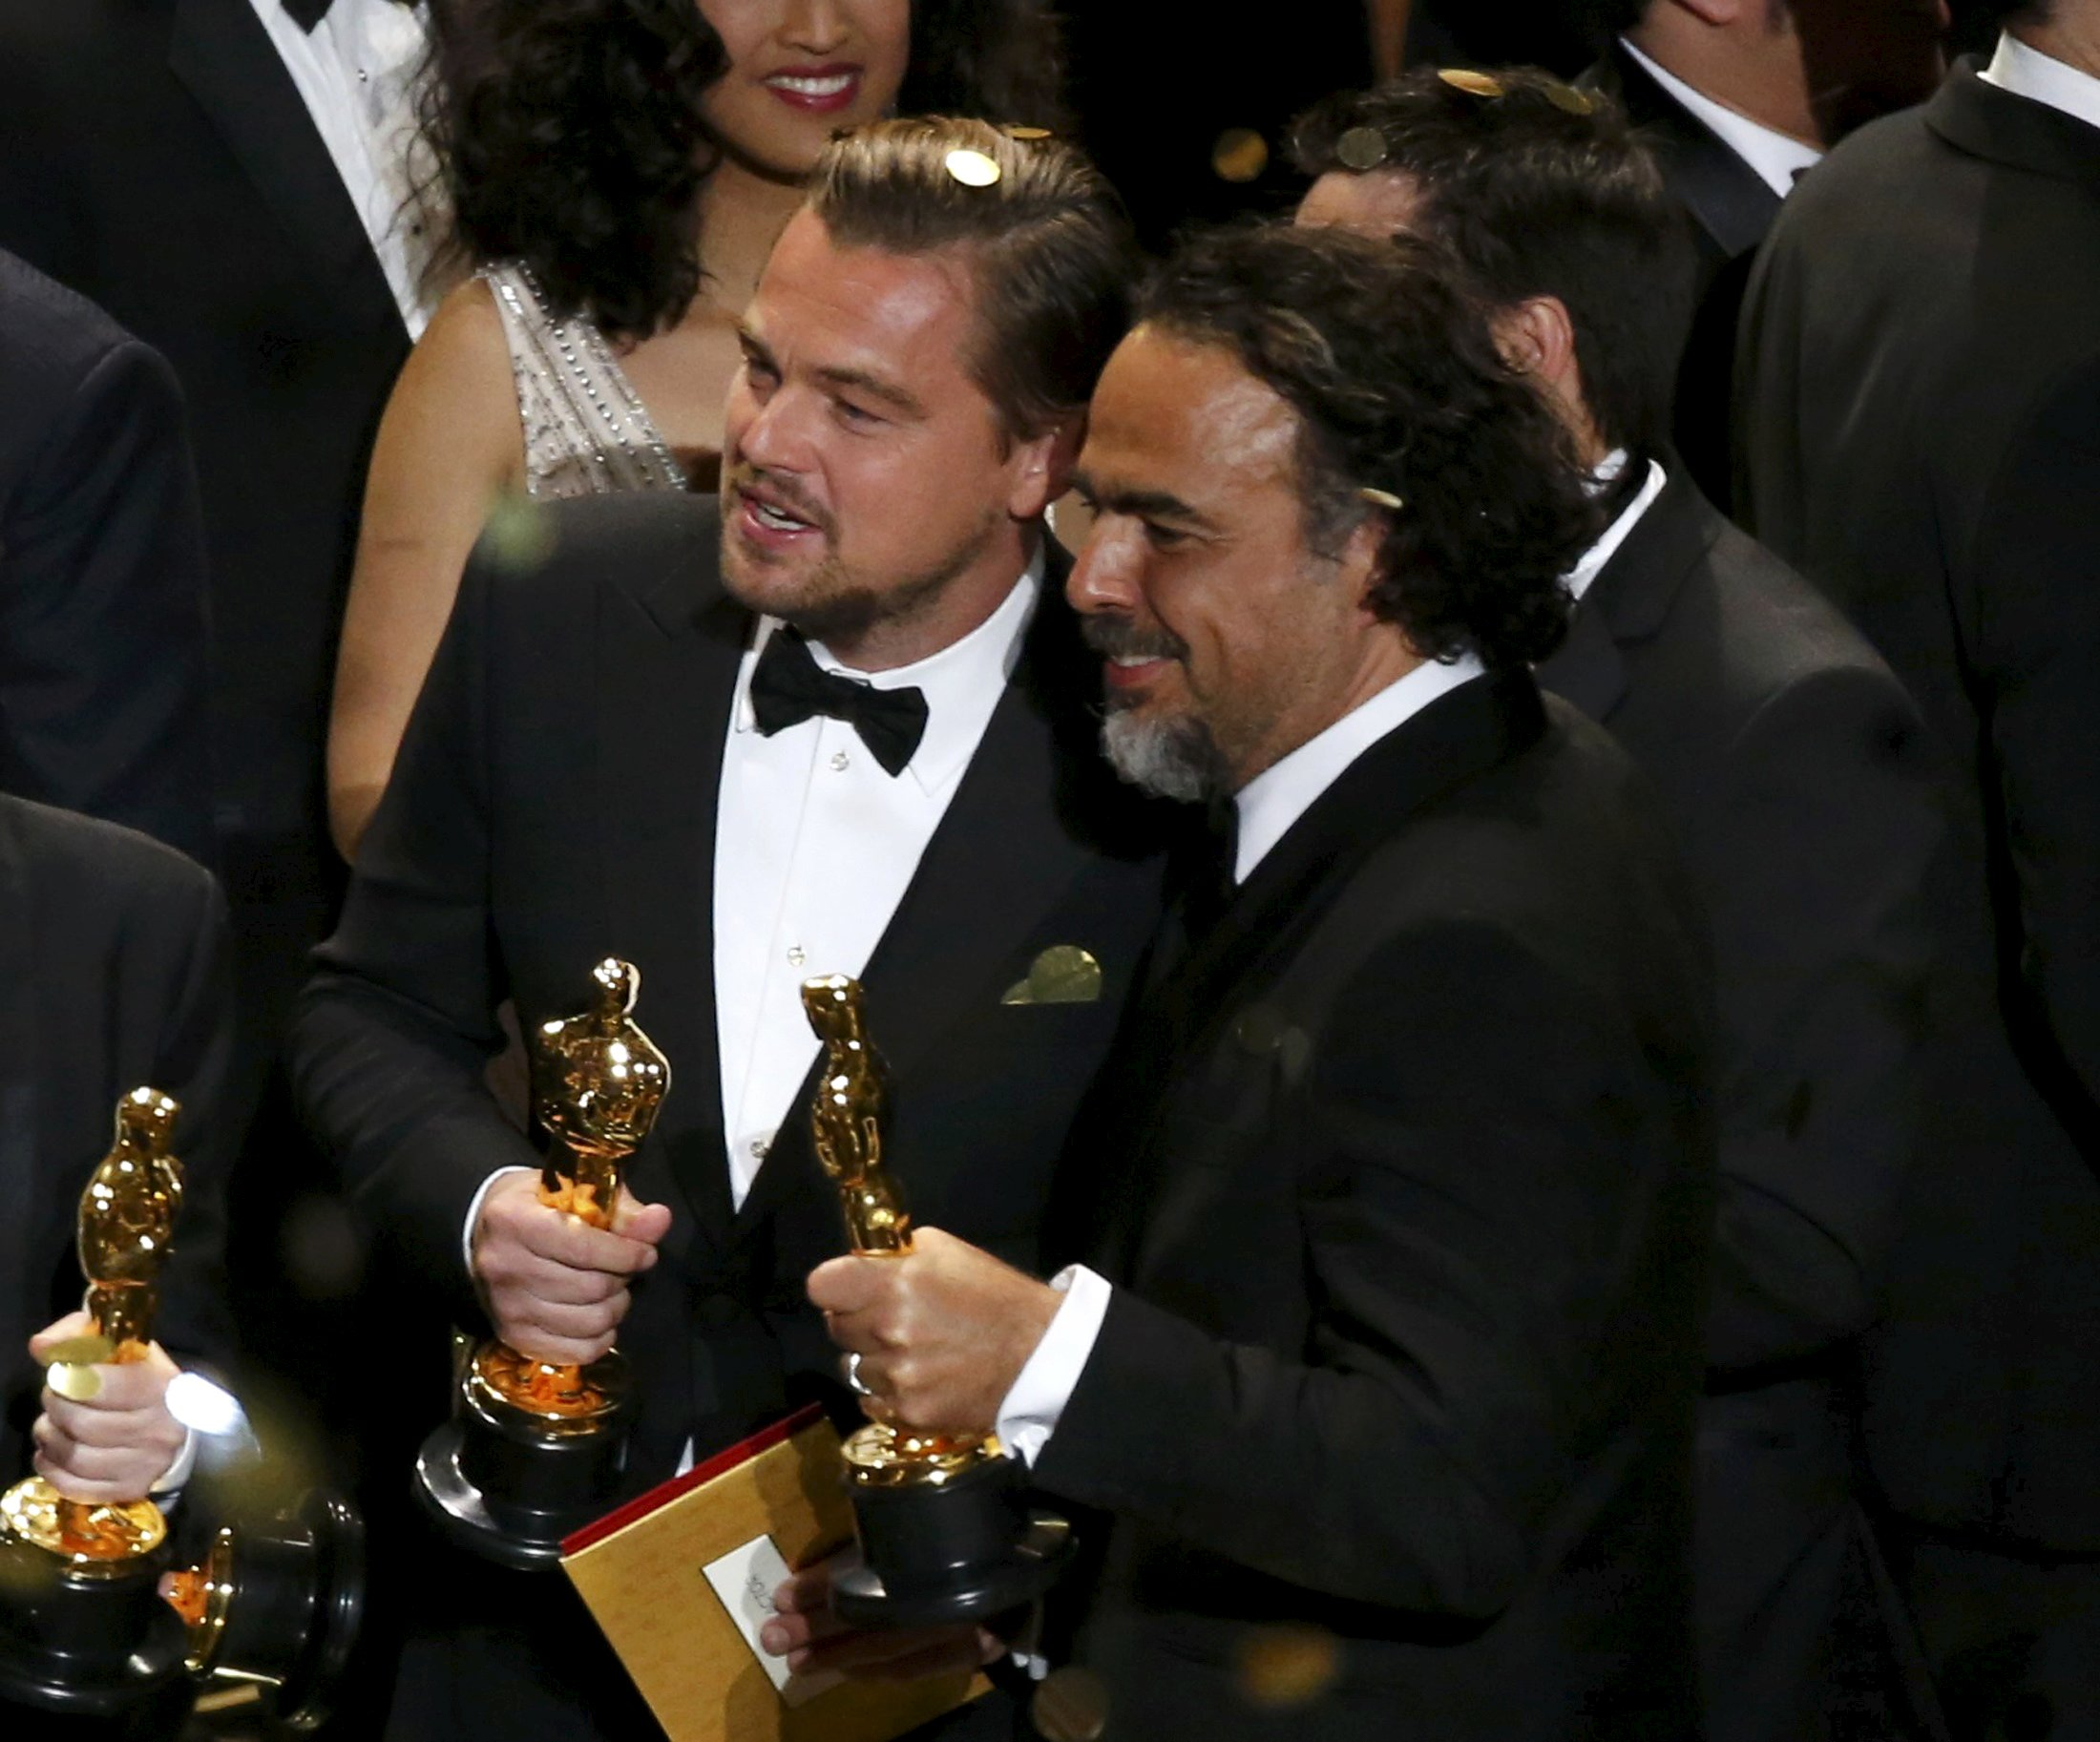 Director Alejandro Inarritu (R) and actor Leonardo DiCaprio hold their Oscars after the end of the awards ceremony at the 88th Academy Awards in Hollywood, California February 28, 2016.   REUTERS/Mario Anzuoni        TPX IMAGES OF THE DAY